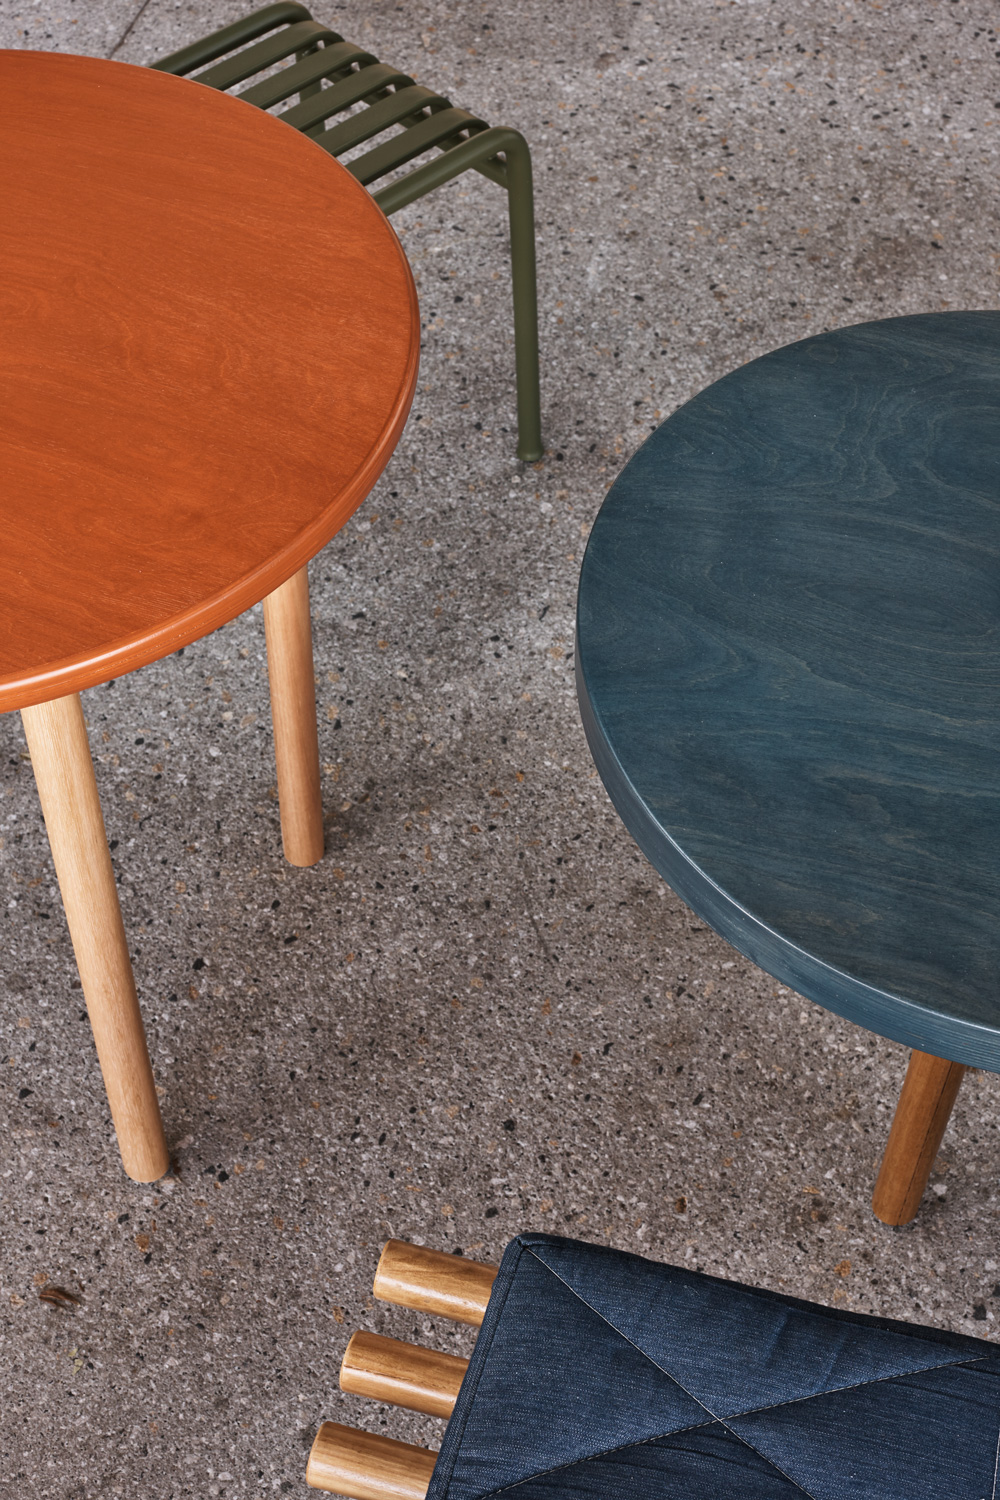 A series of timber stained table tops provided a gallery like experience to the outdoor seating. These were paired with custom concrete and timber seating benches. The rich blues and burnt ombres inspired by the folded paper burger icons